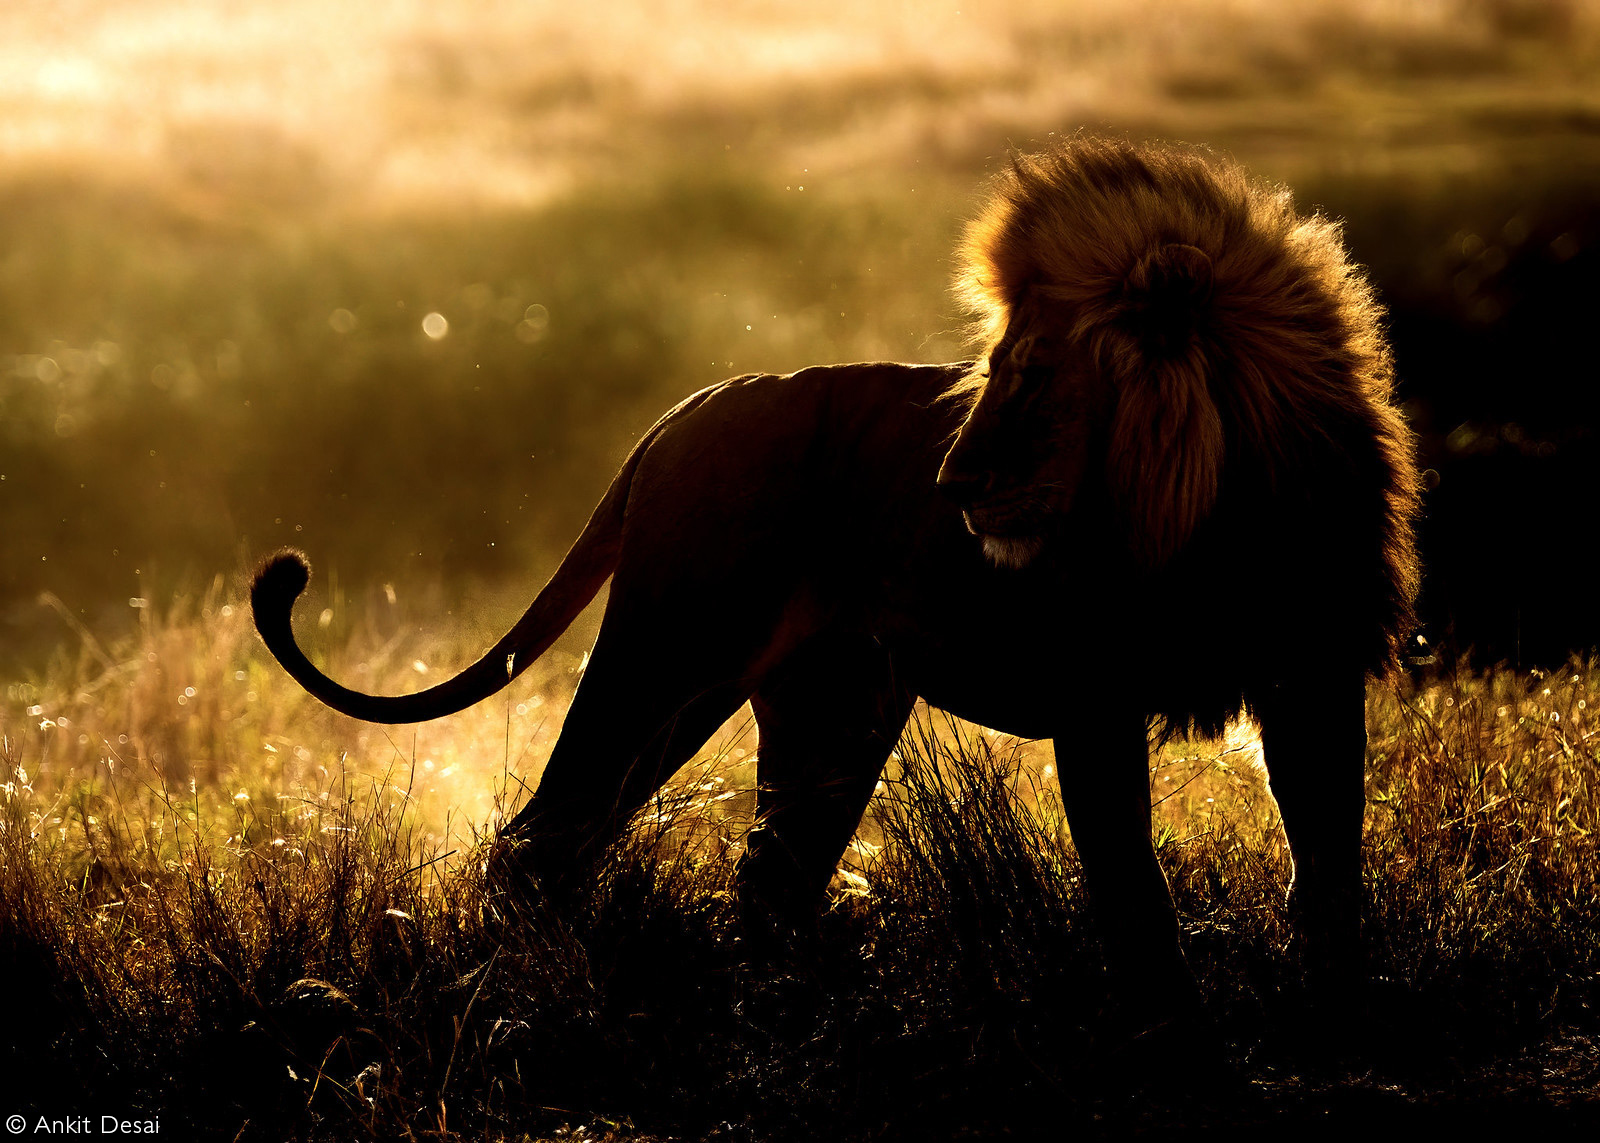 A beautifully back-lit capture of a dominant lion. Serengeti National Park, Tanzania © Ankit Desai